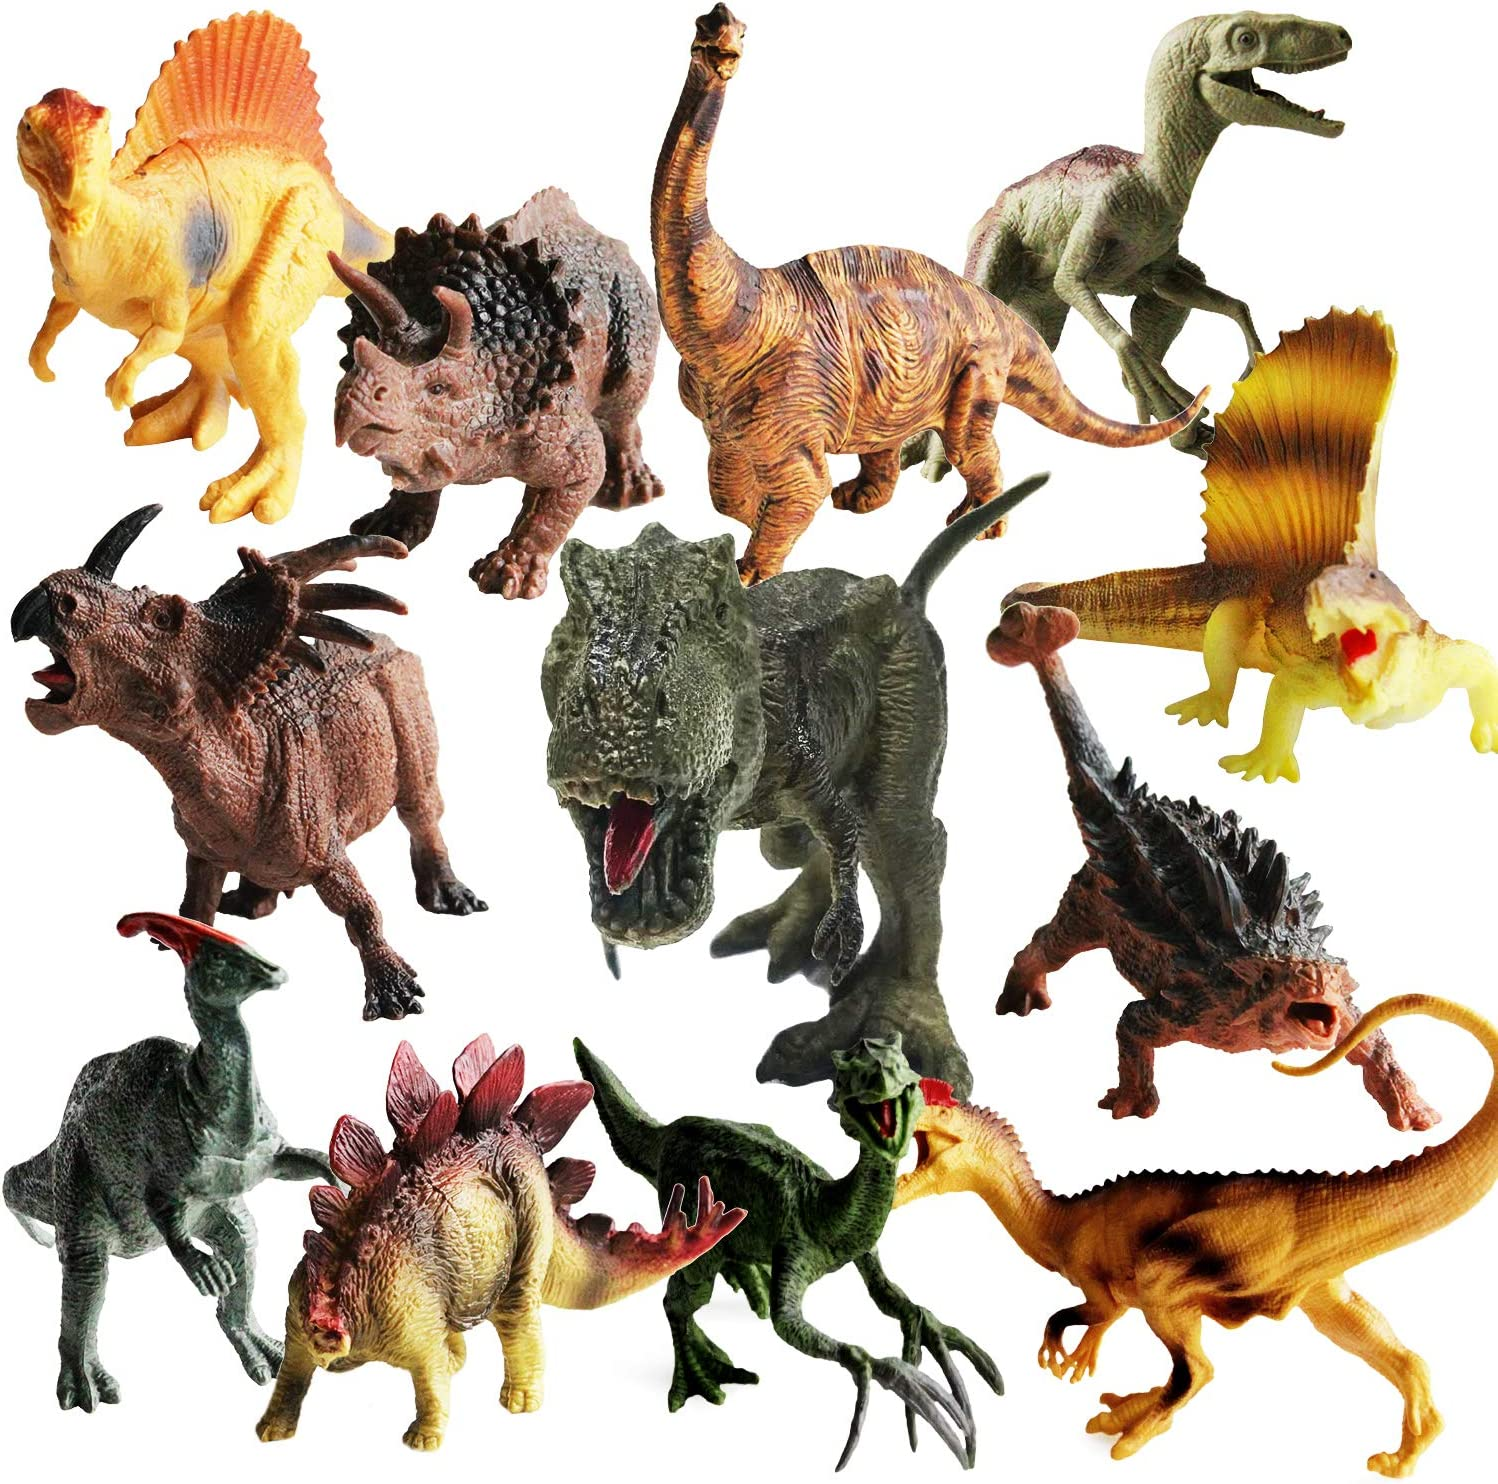 "ToyerBee Dinosaurs Toys -12 Pack 7"" to 9"" Realistic Dinosaur Figures for 3 Years Old & Up, Great as Dinosaur Party Supplies"